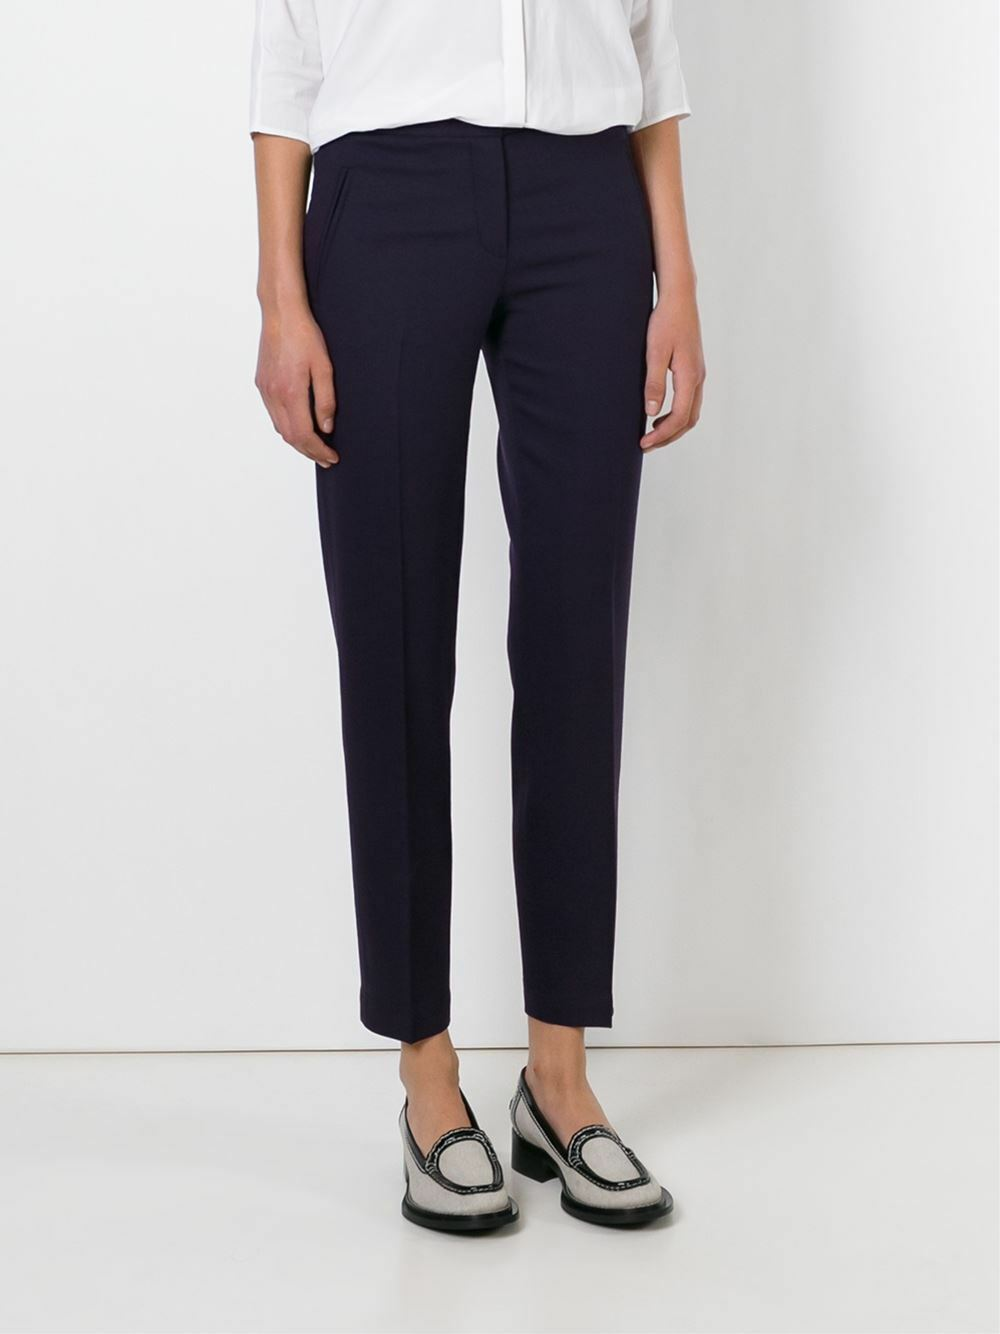 NWT Tory Burch Cropped Tailored Trousers Navy bluee  – Size 6